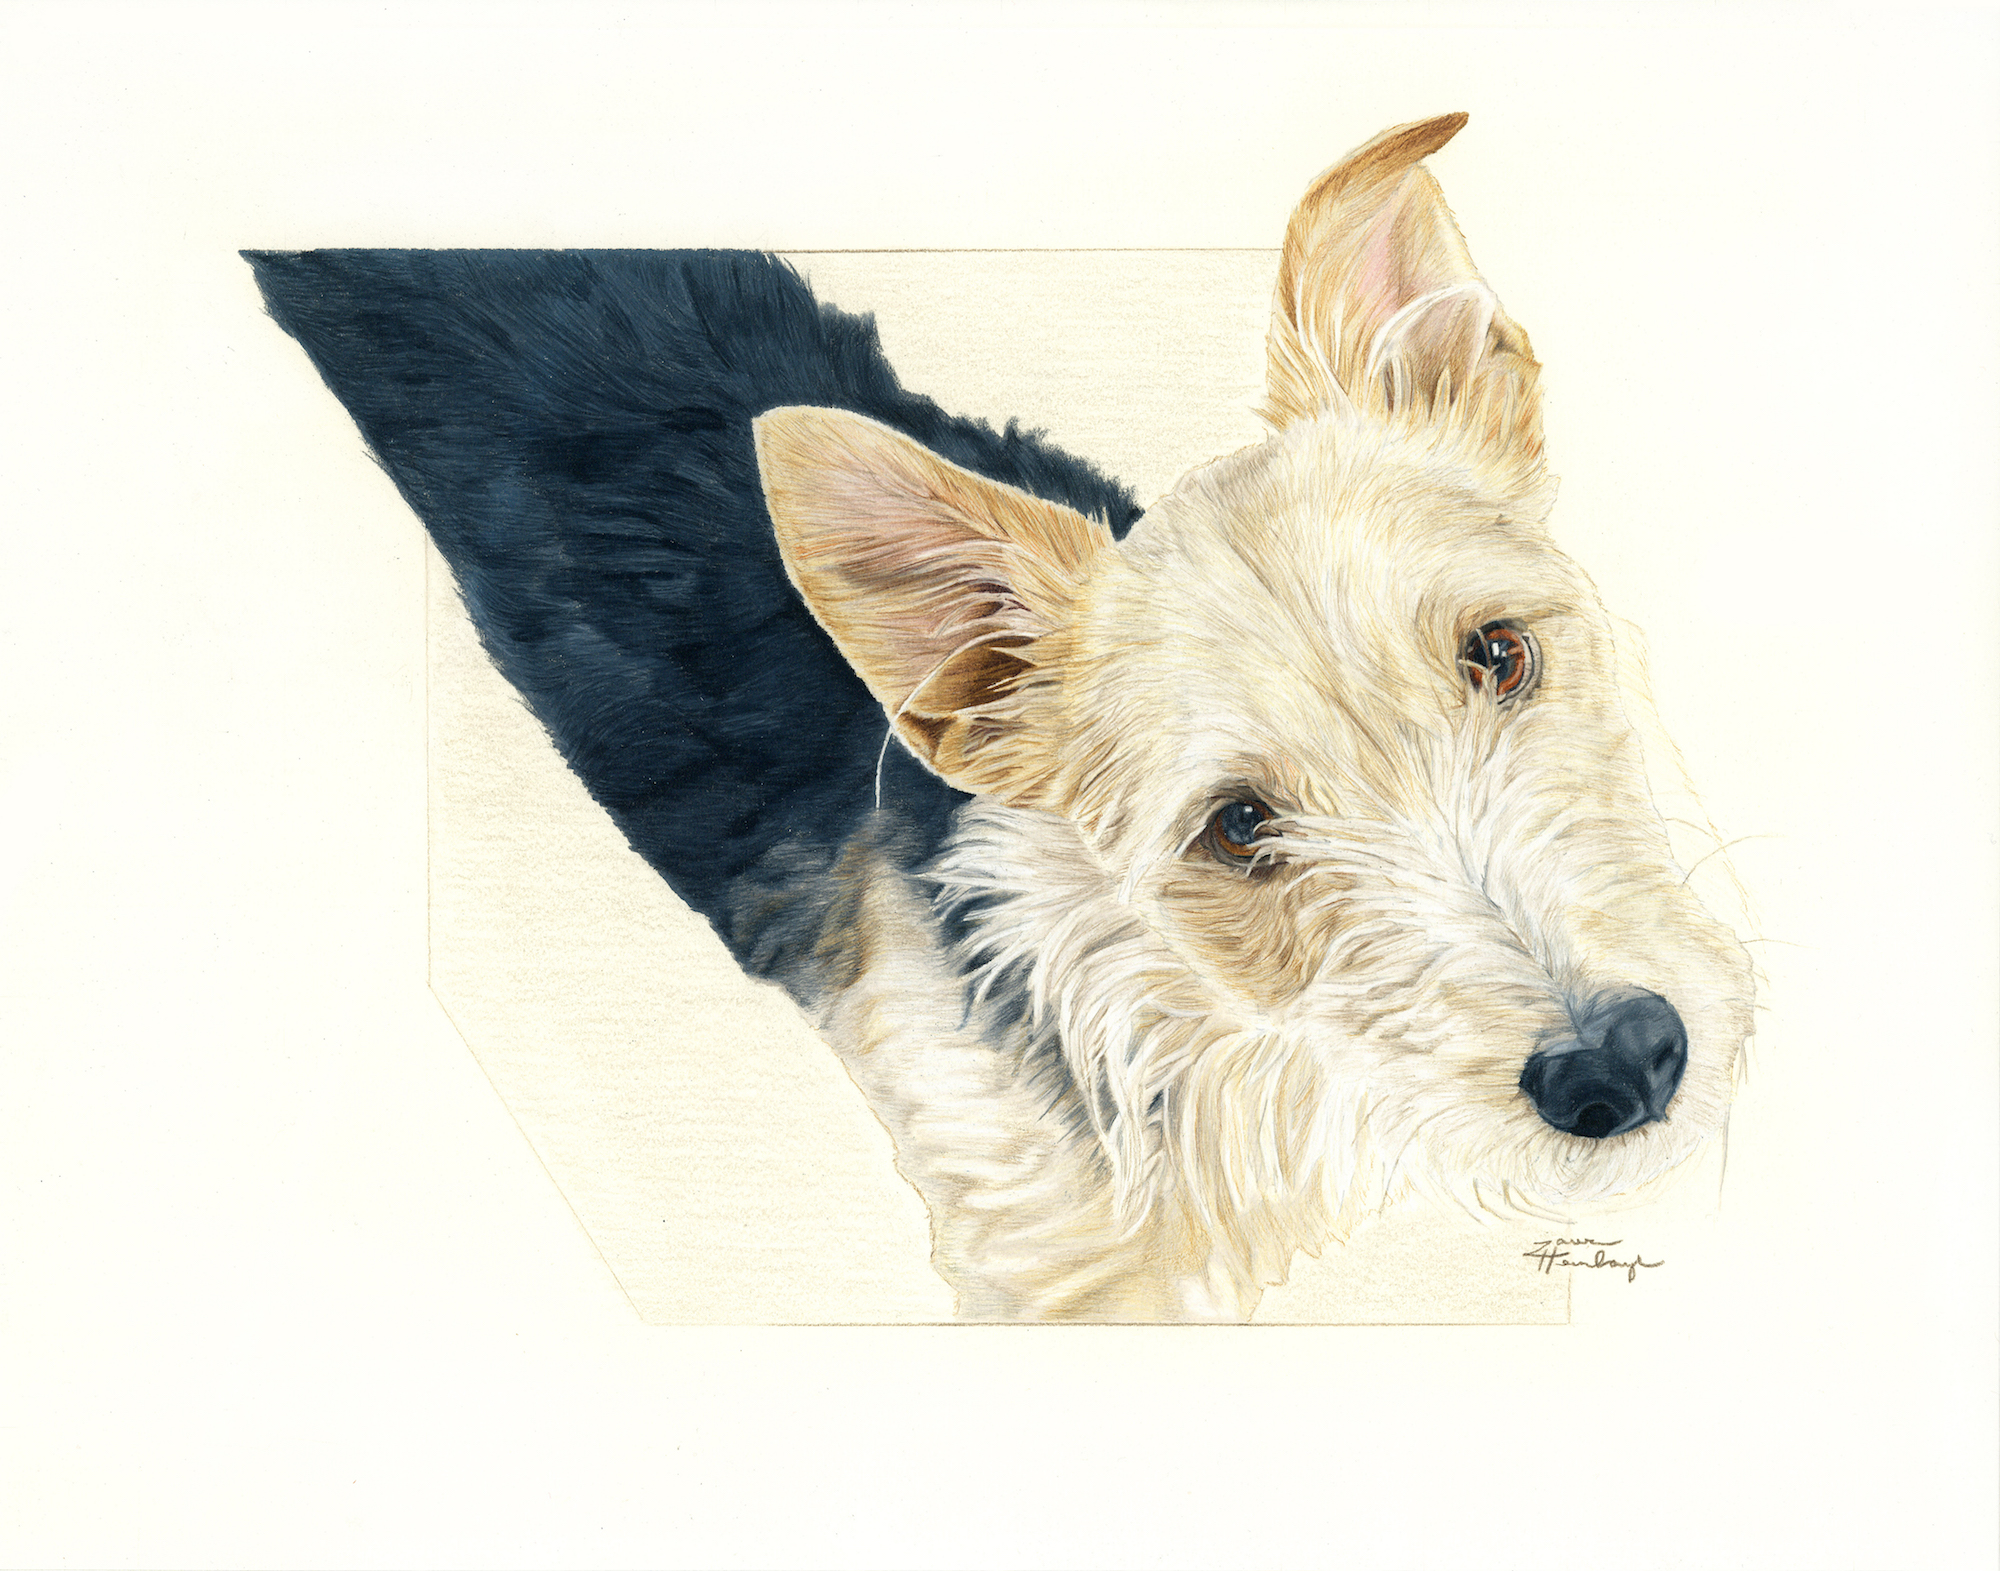 Beau the Terrier Mix (2016)